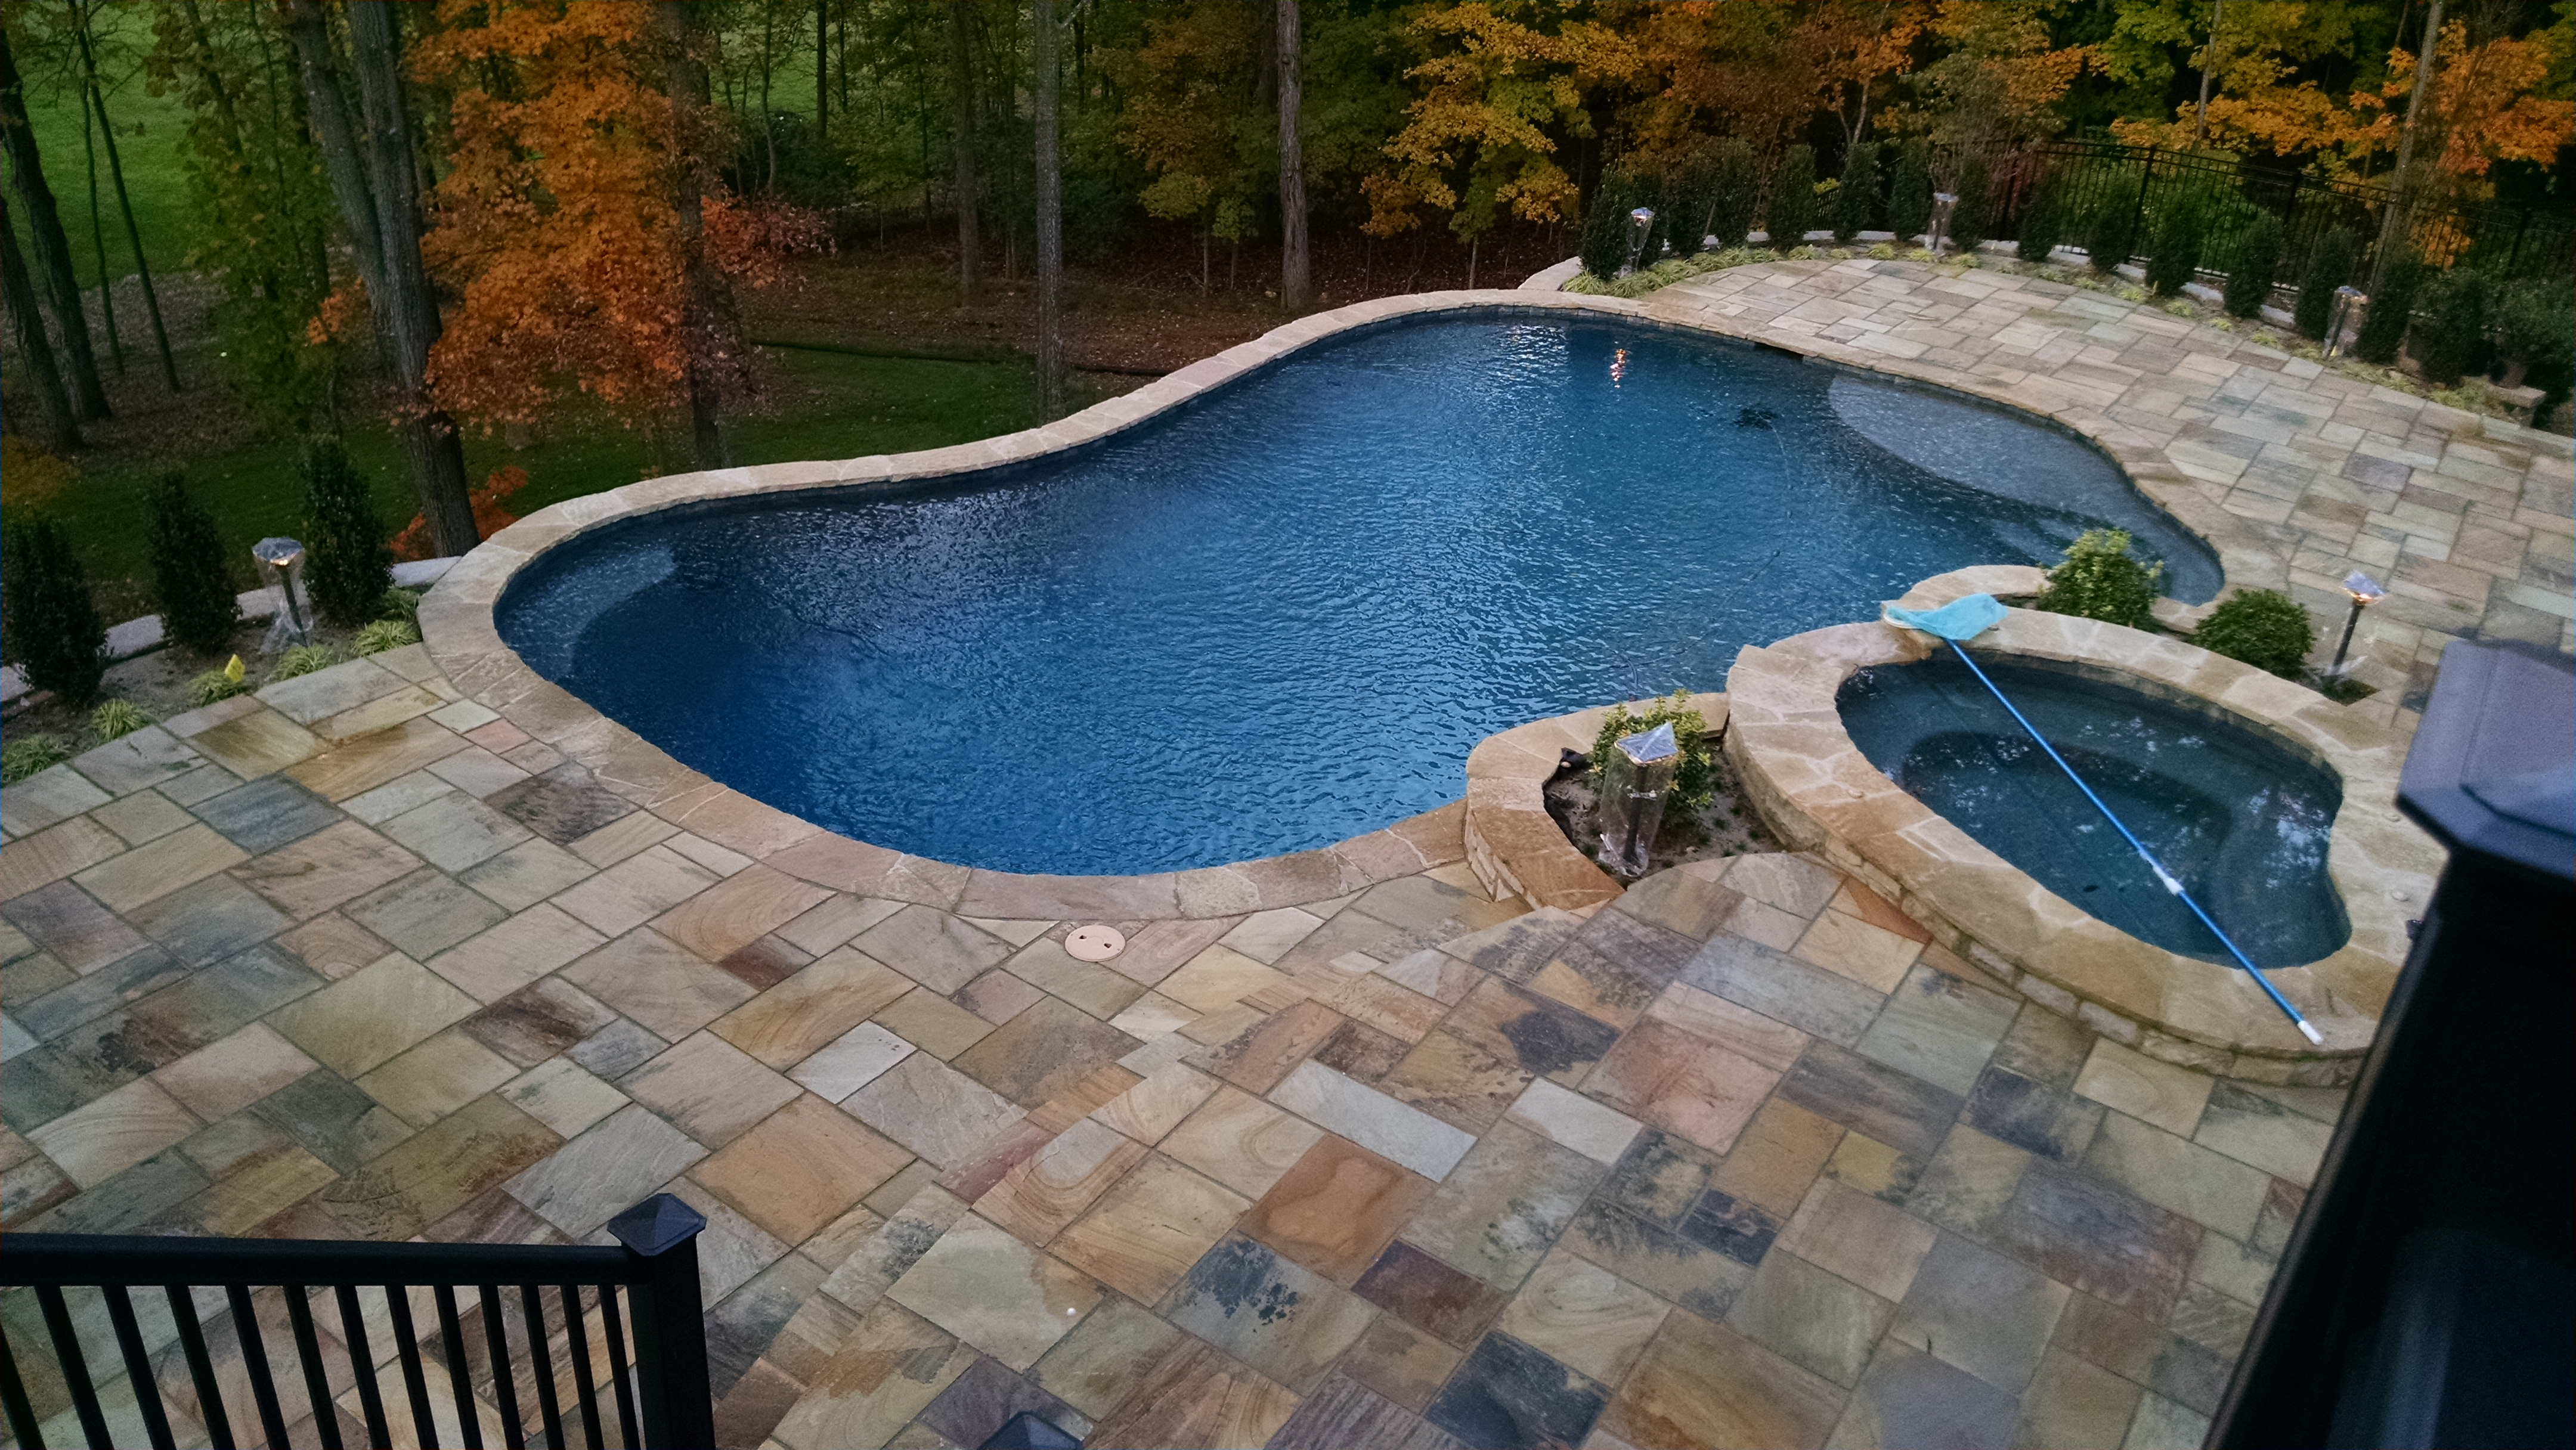 Paver Patio and Swimming Pool